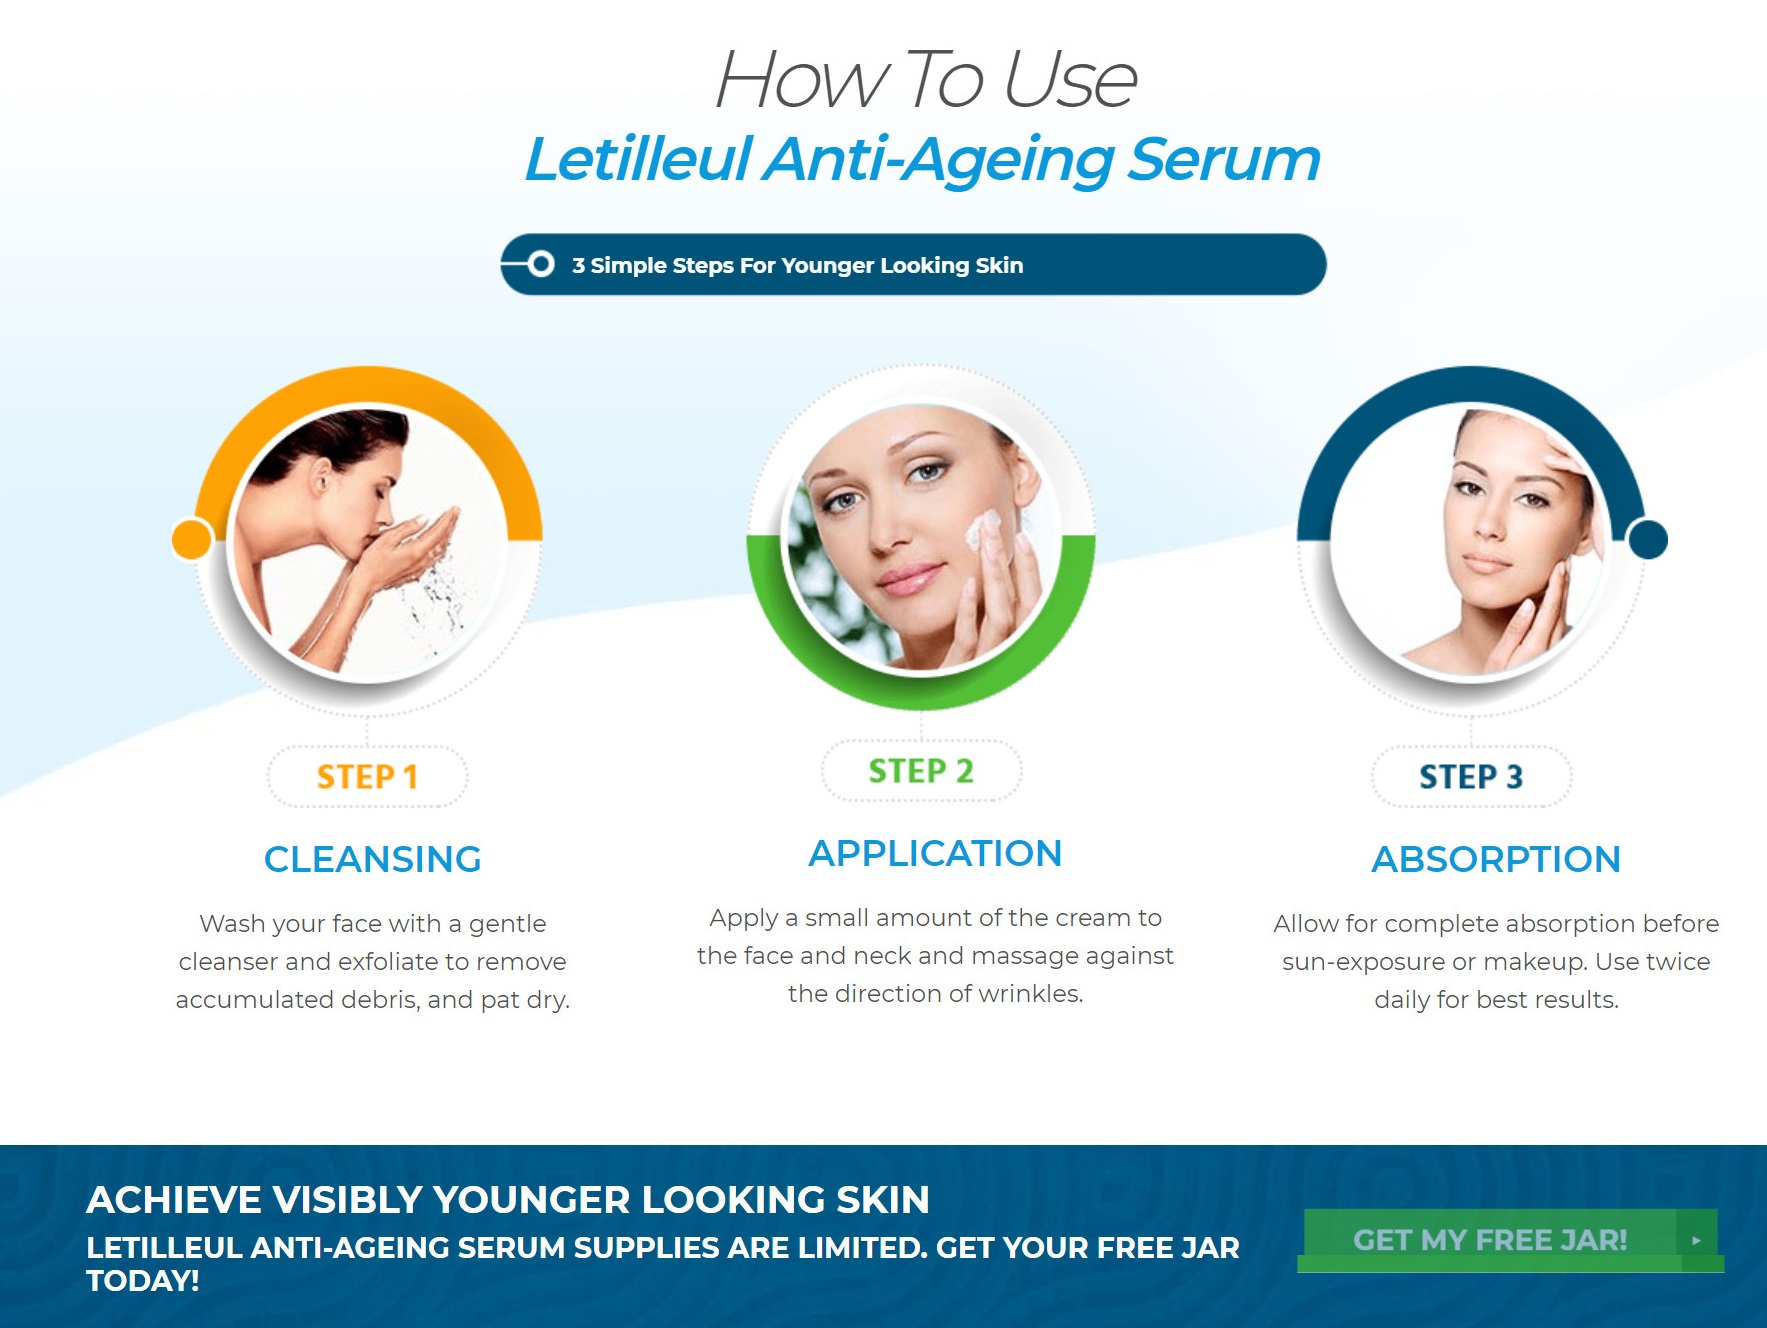 Letilleul Serum Uses